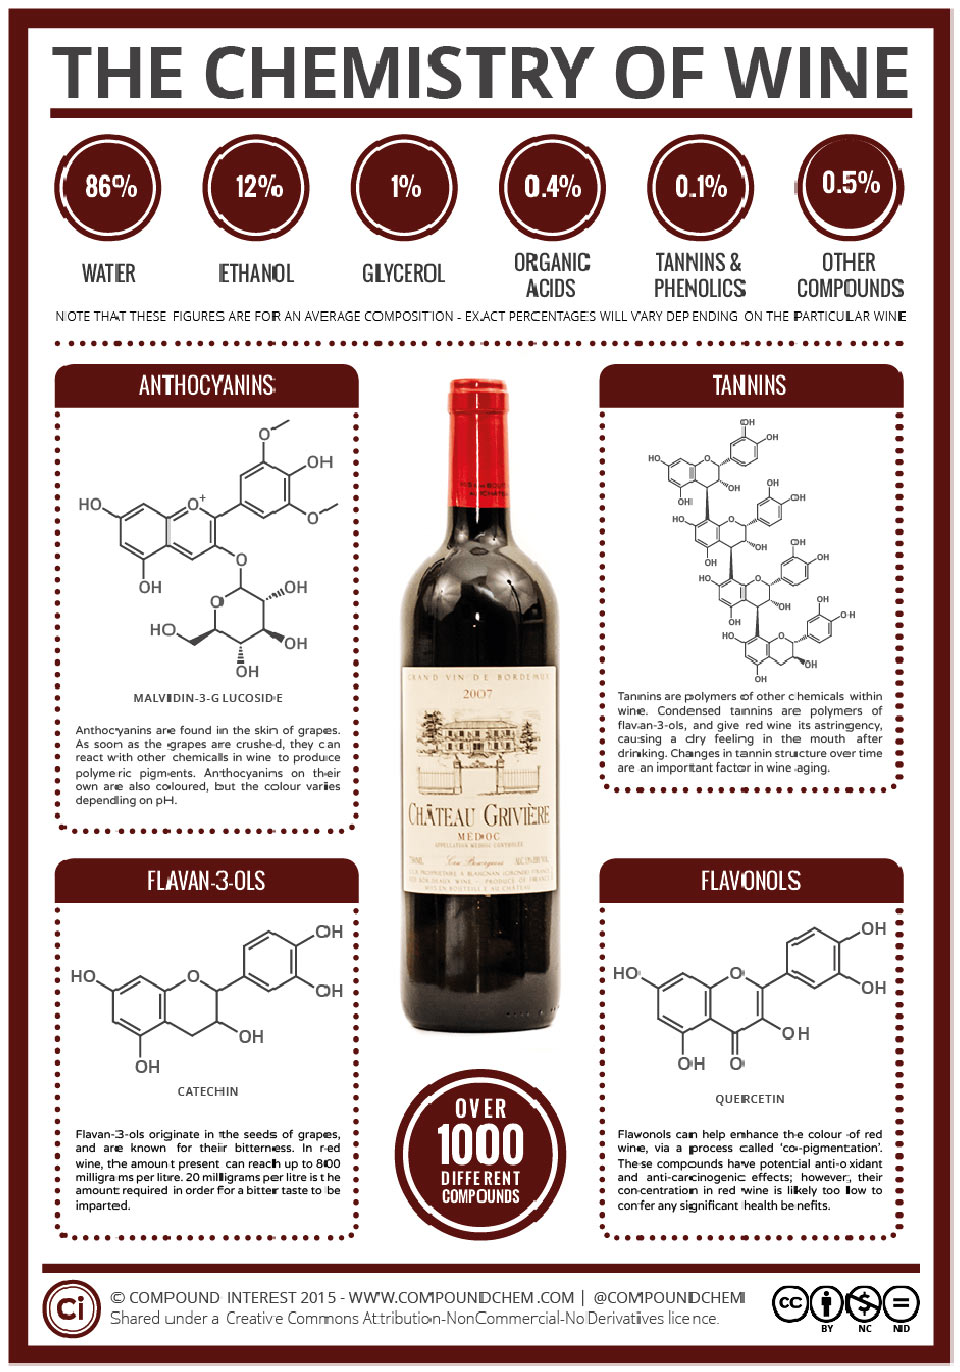 The Chemistry of Wine Infographic